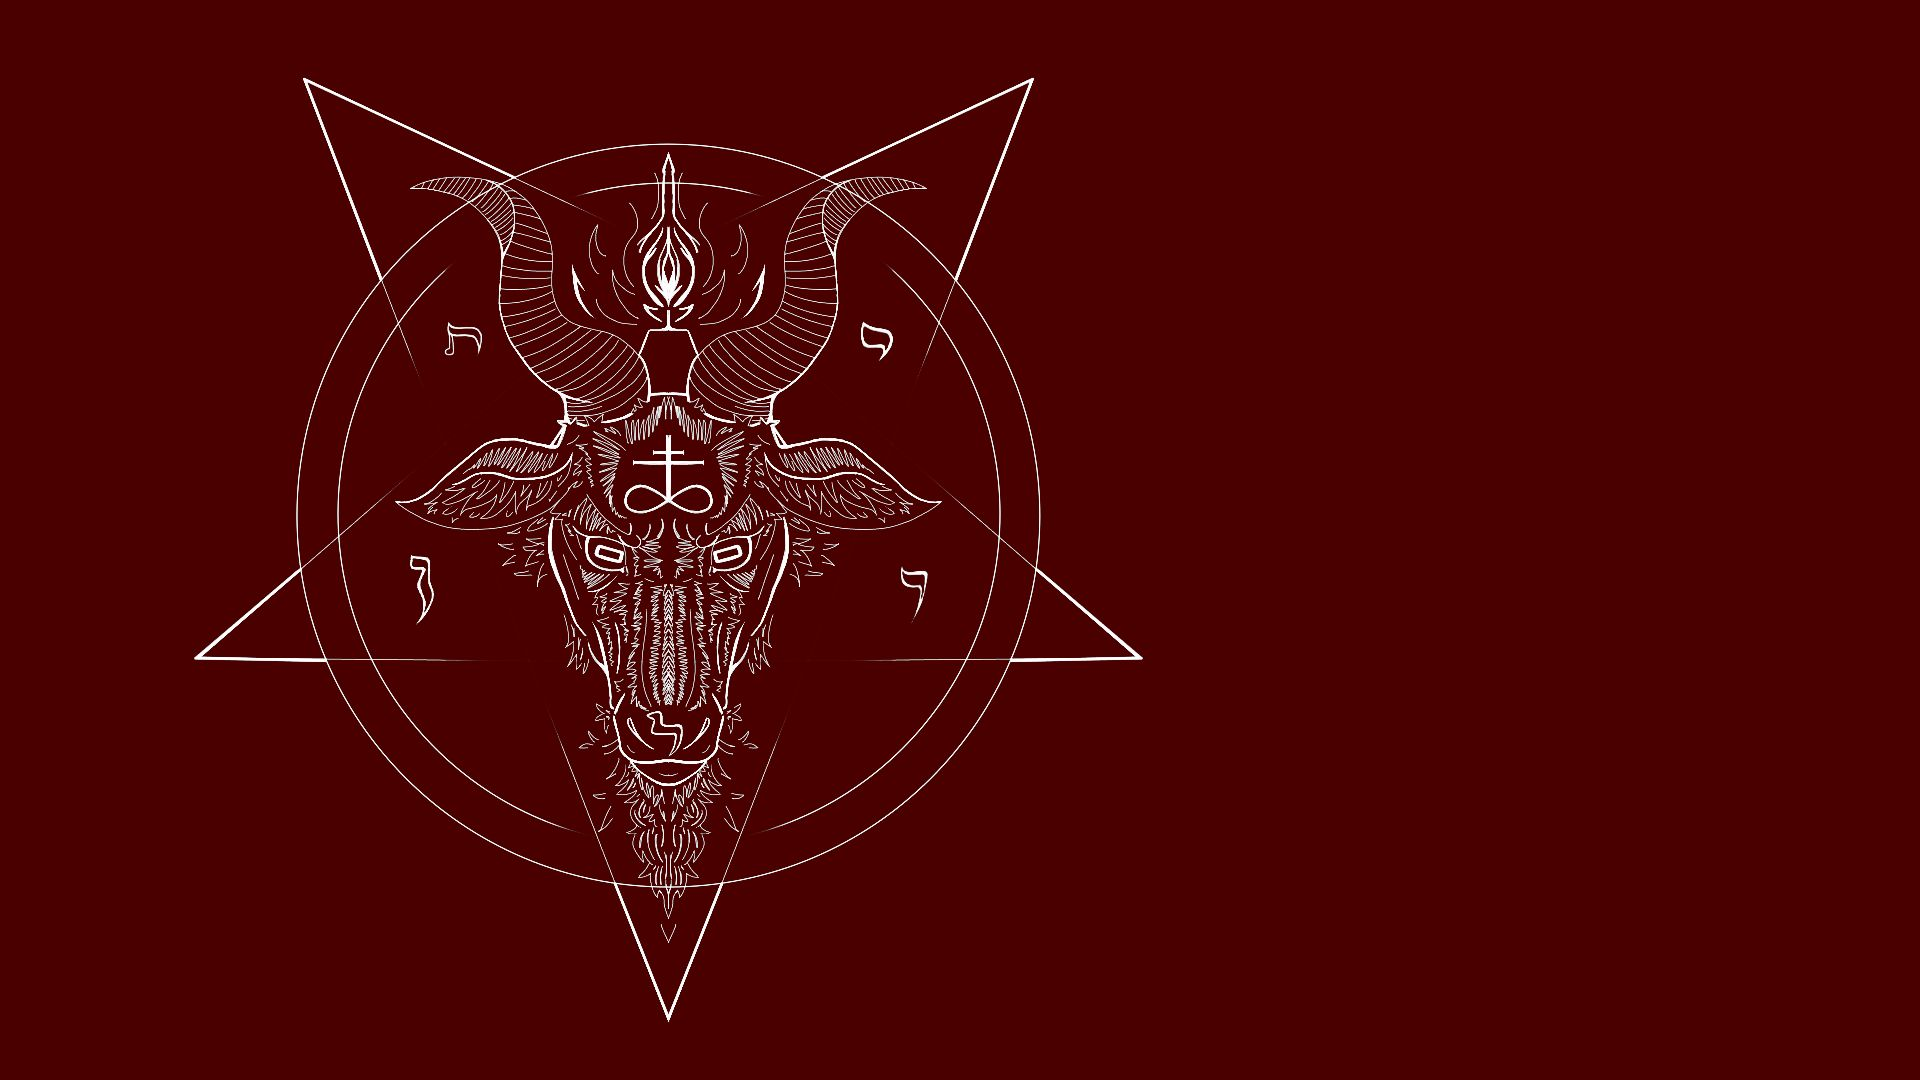 Satanic download free wallpapers for pc in hd